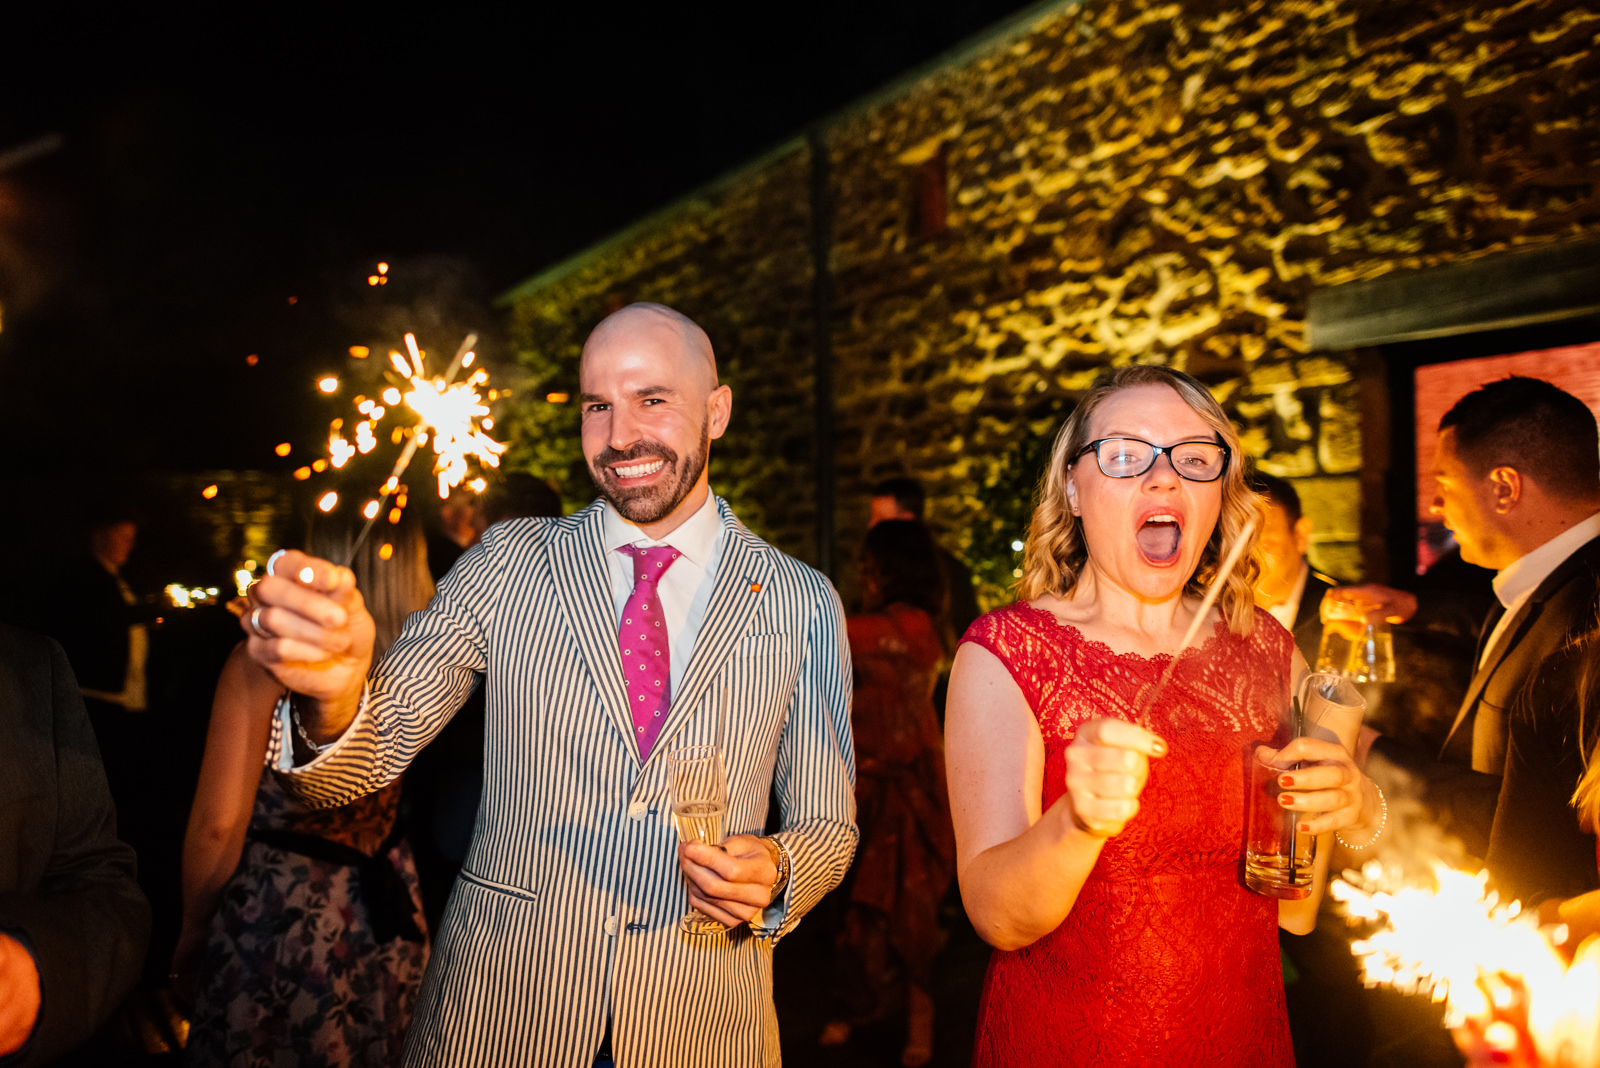 guests having fun with sparklers in the evening